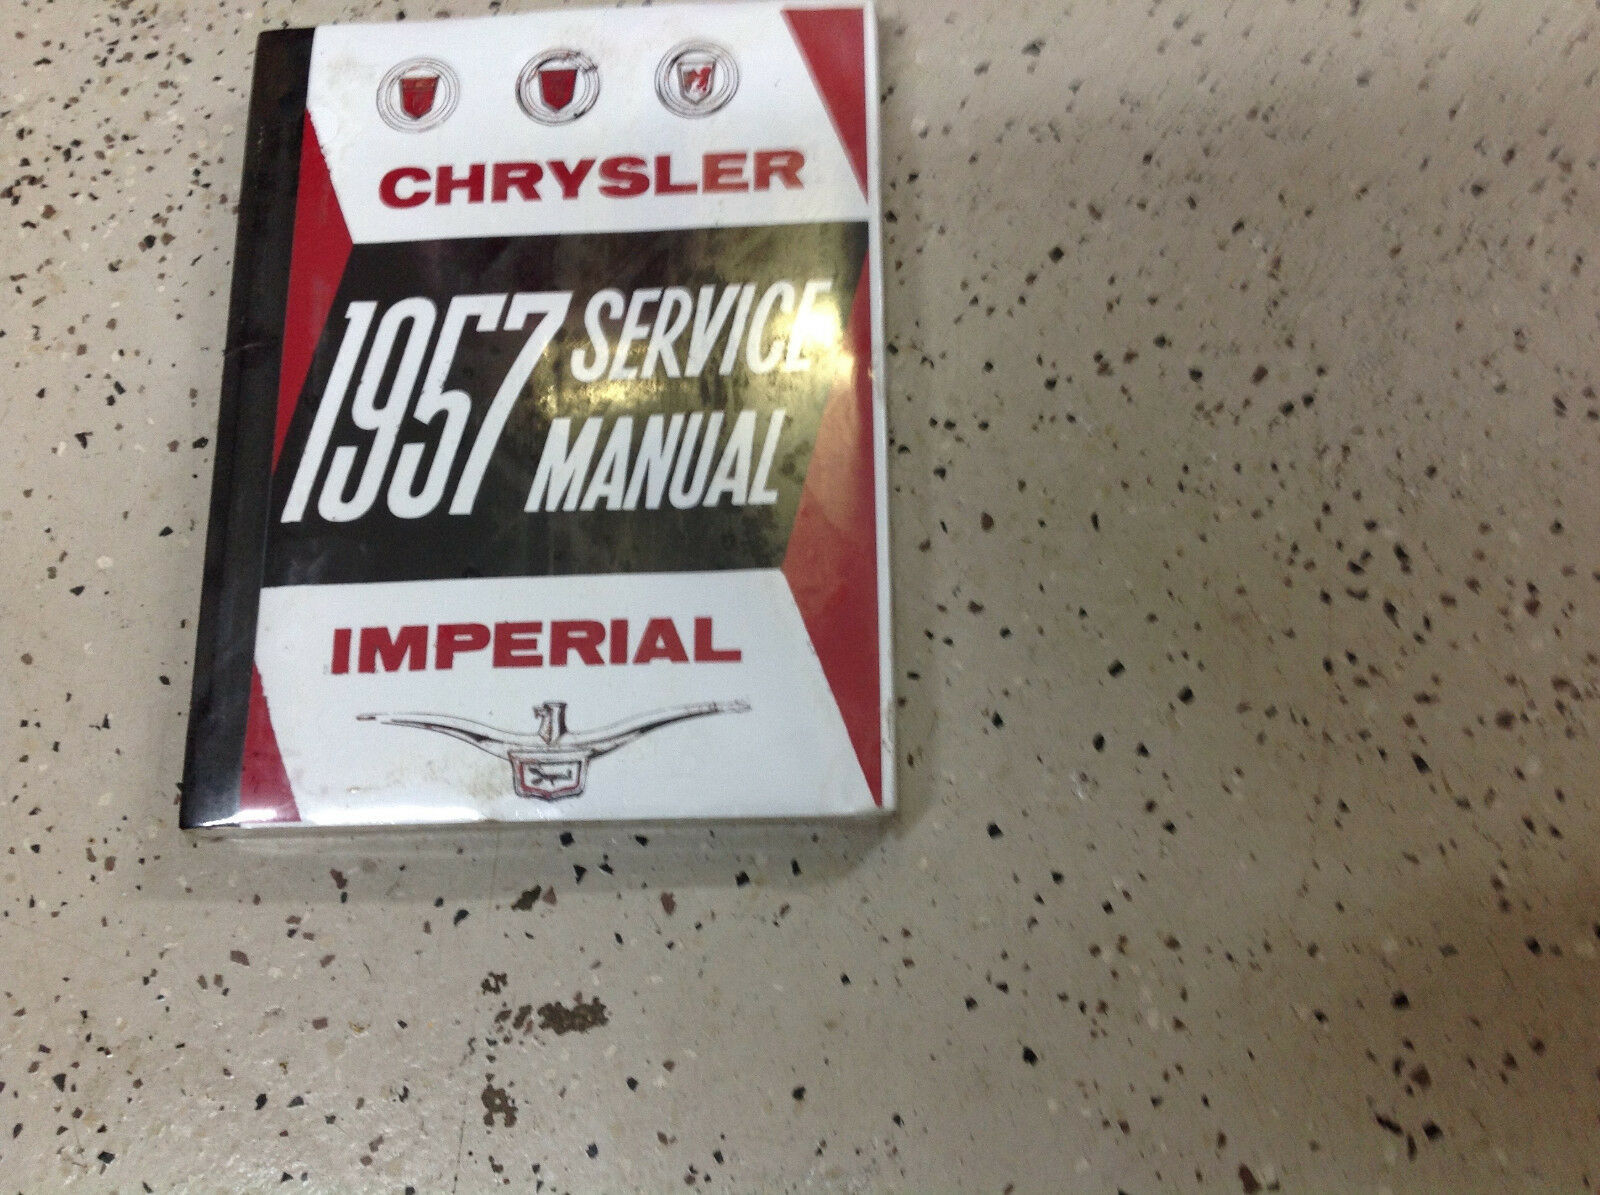 1957 CHRYSLER IMPERIAL Service Shop Repair Manual BRAND NEW FACTORY REPRINT